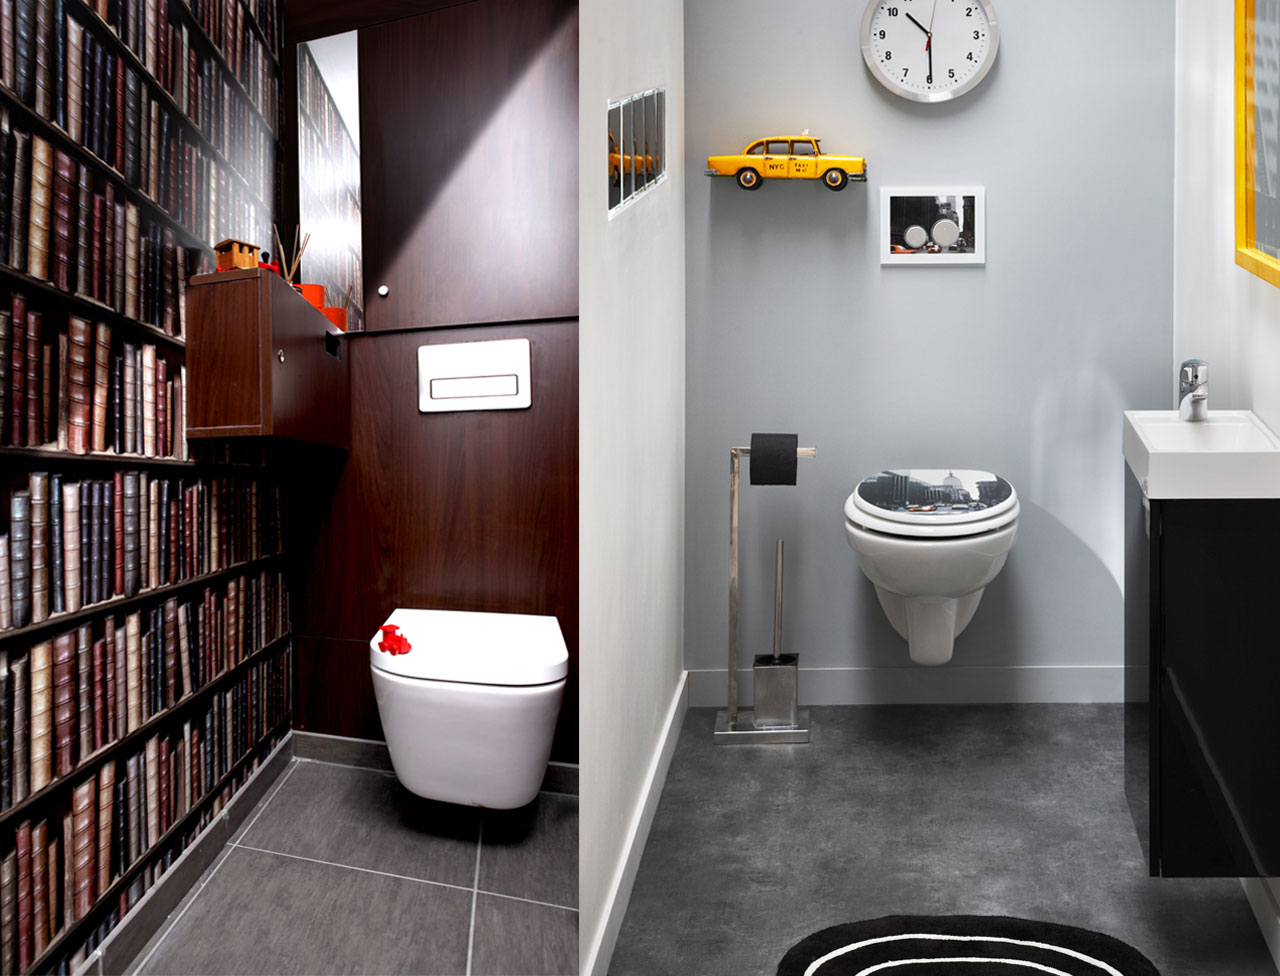 D coration interieur toilettes exemples d 39 am nagements Article de decoration interieur